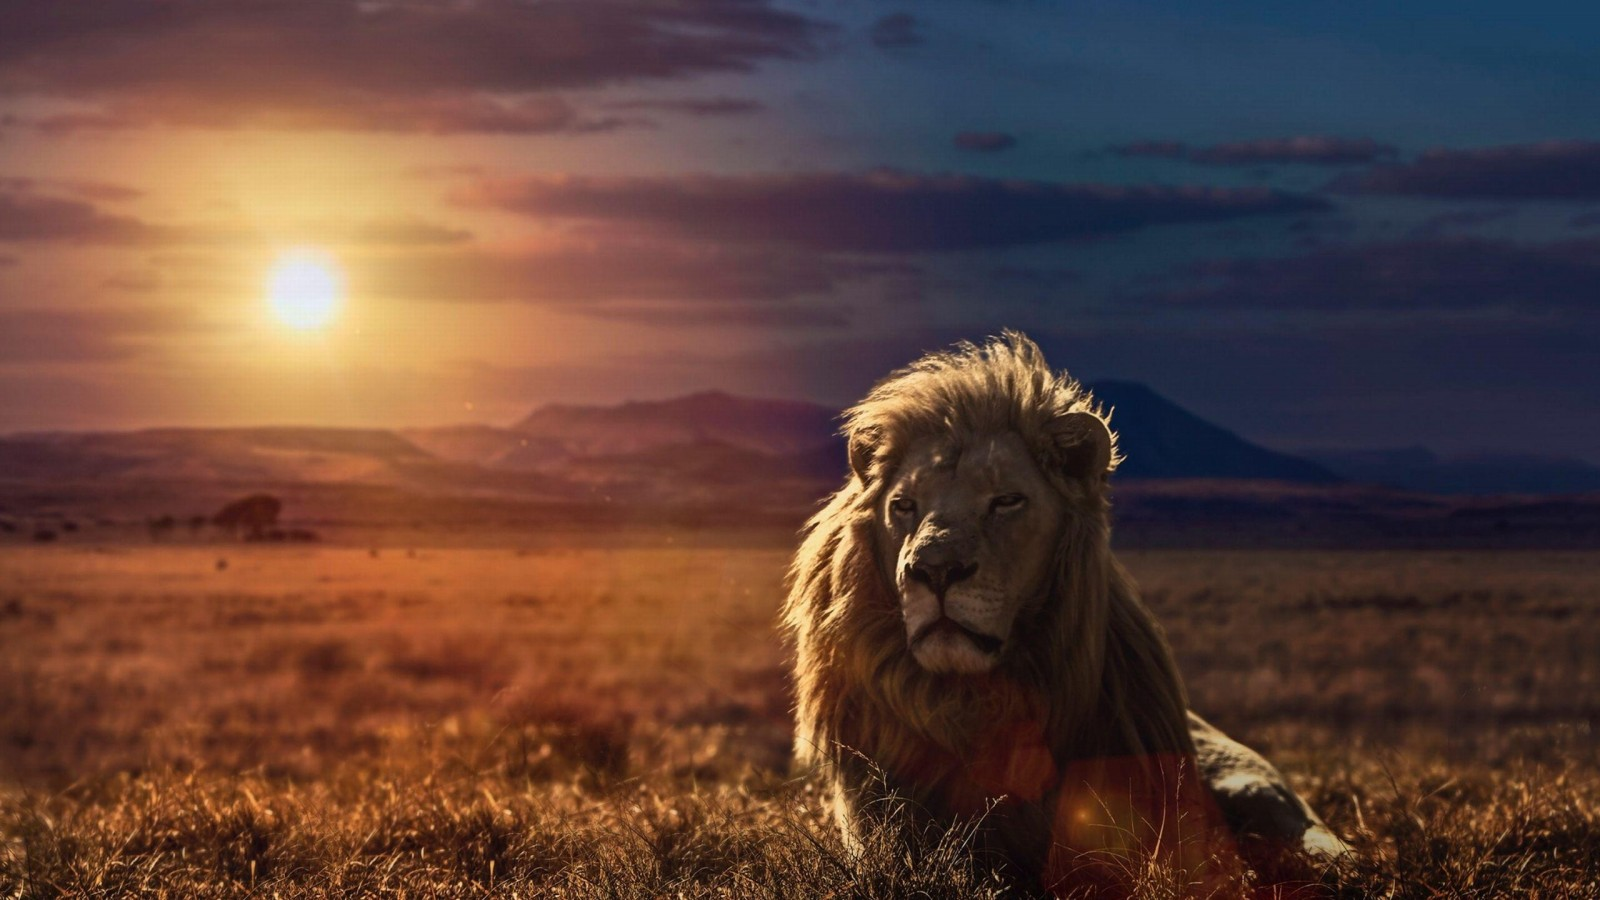 Free Download Lion Hd Wallpapers Lion Hd Pictures Download Hd 1600x900 For Your Desktop Mobile Tablet Explore 74 Lion Wallpaper Desktop White Lion Wallpaper Desktop Mountain Lion Desktop Wallpaper